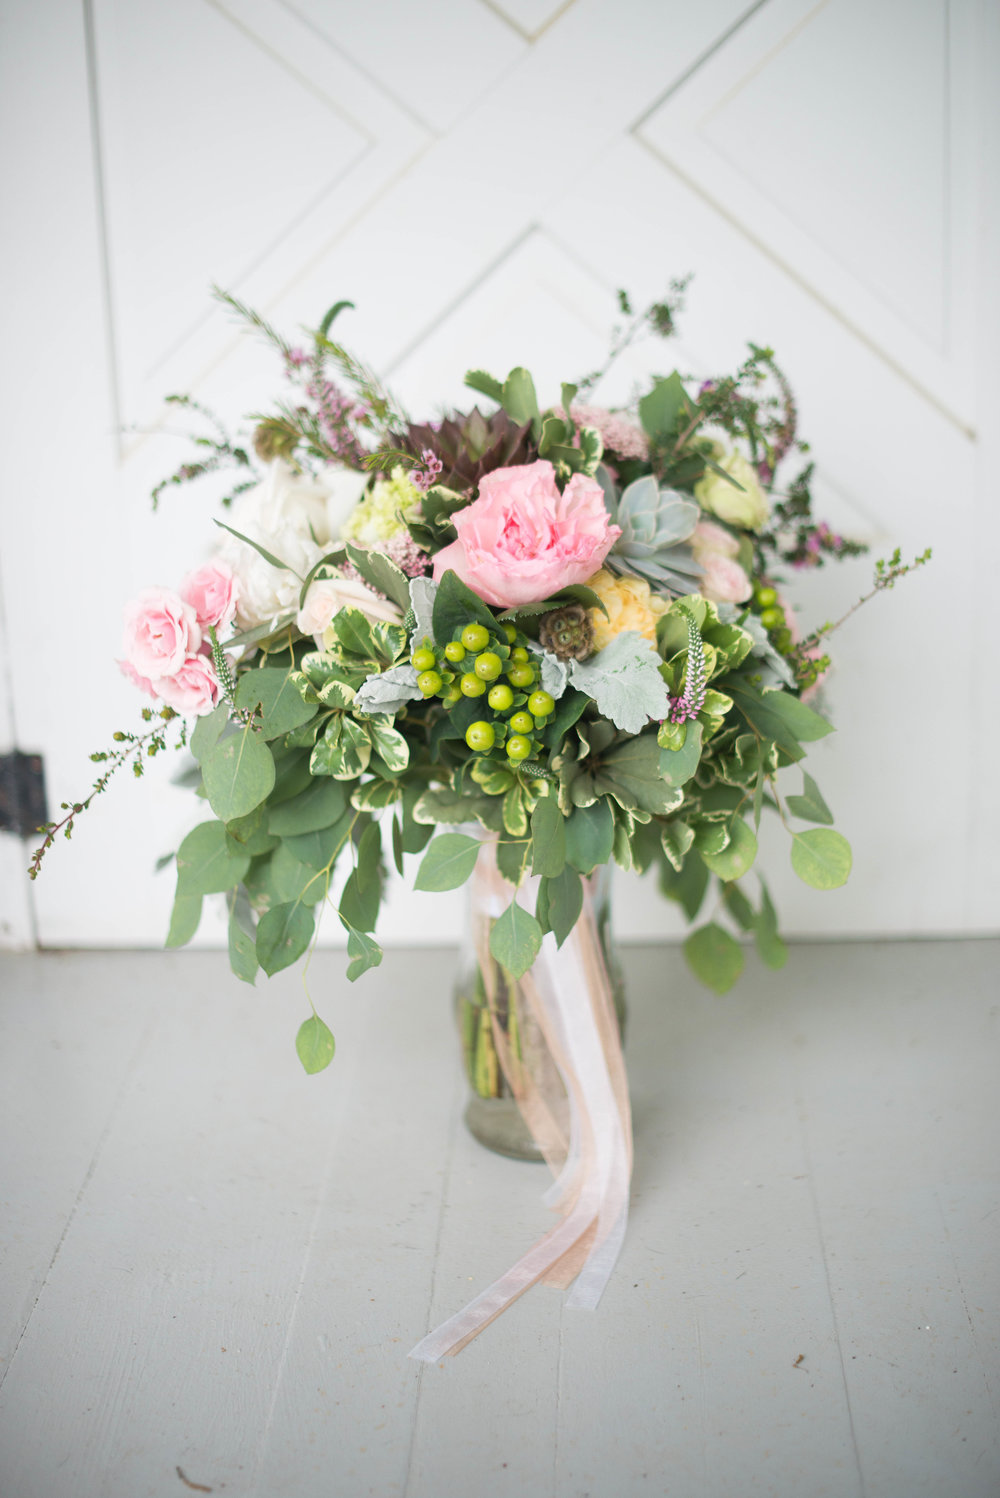 These STUNNING florals were designed by local  DeVoe Floral